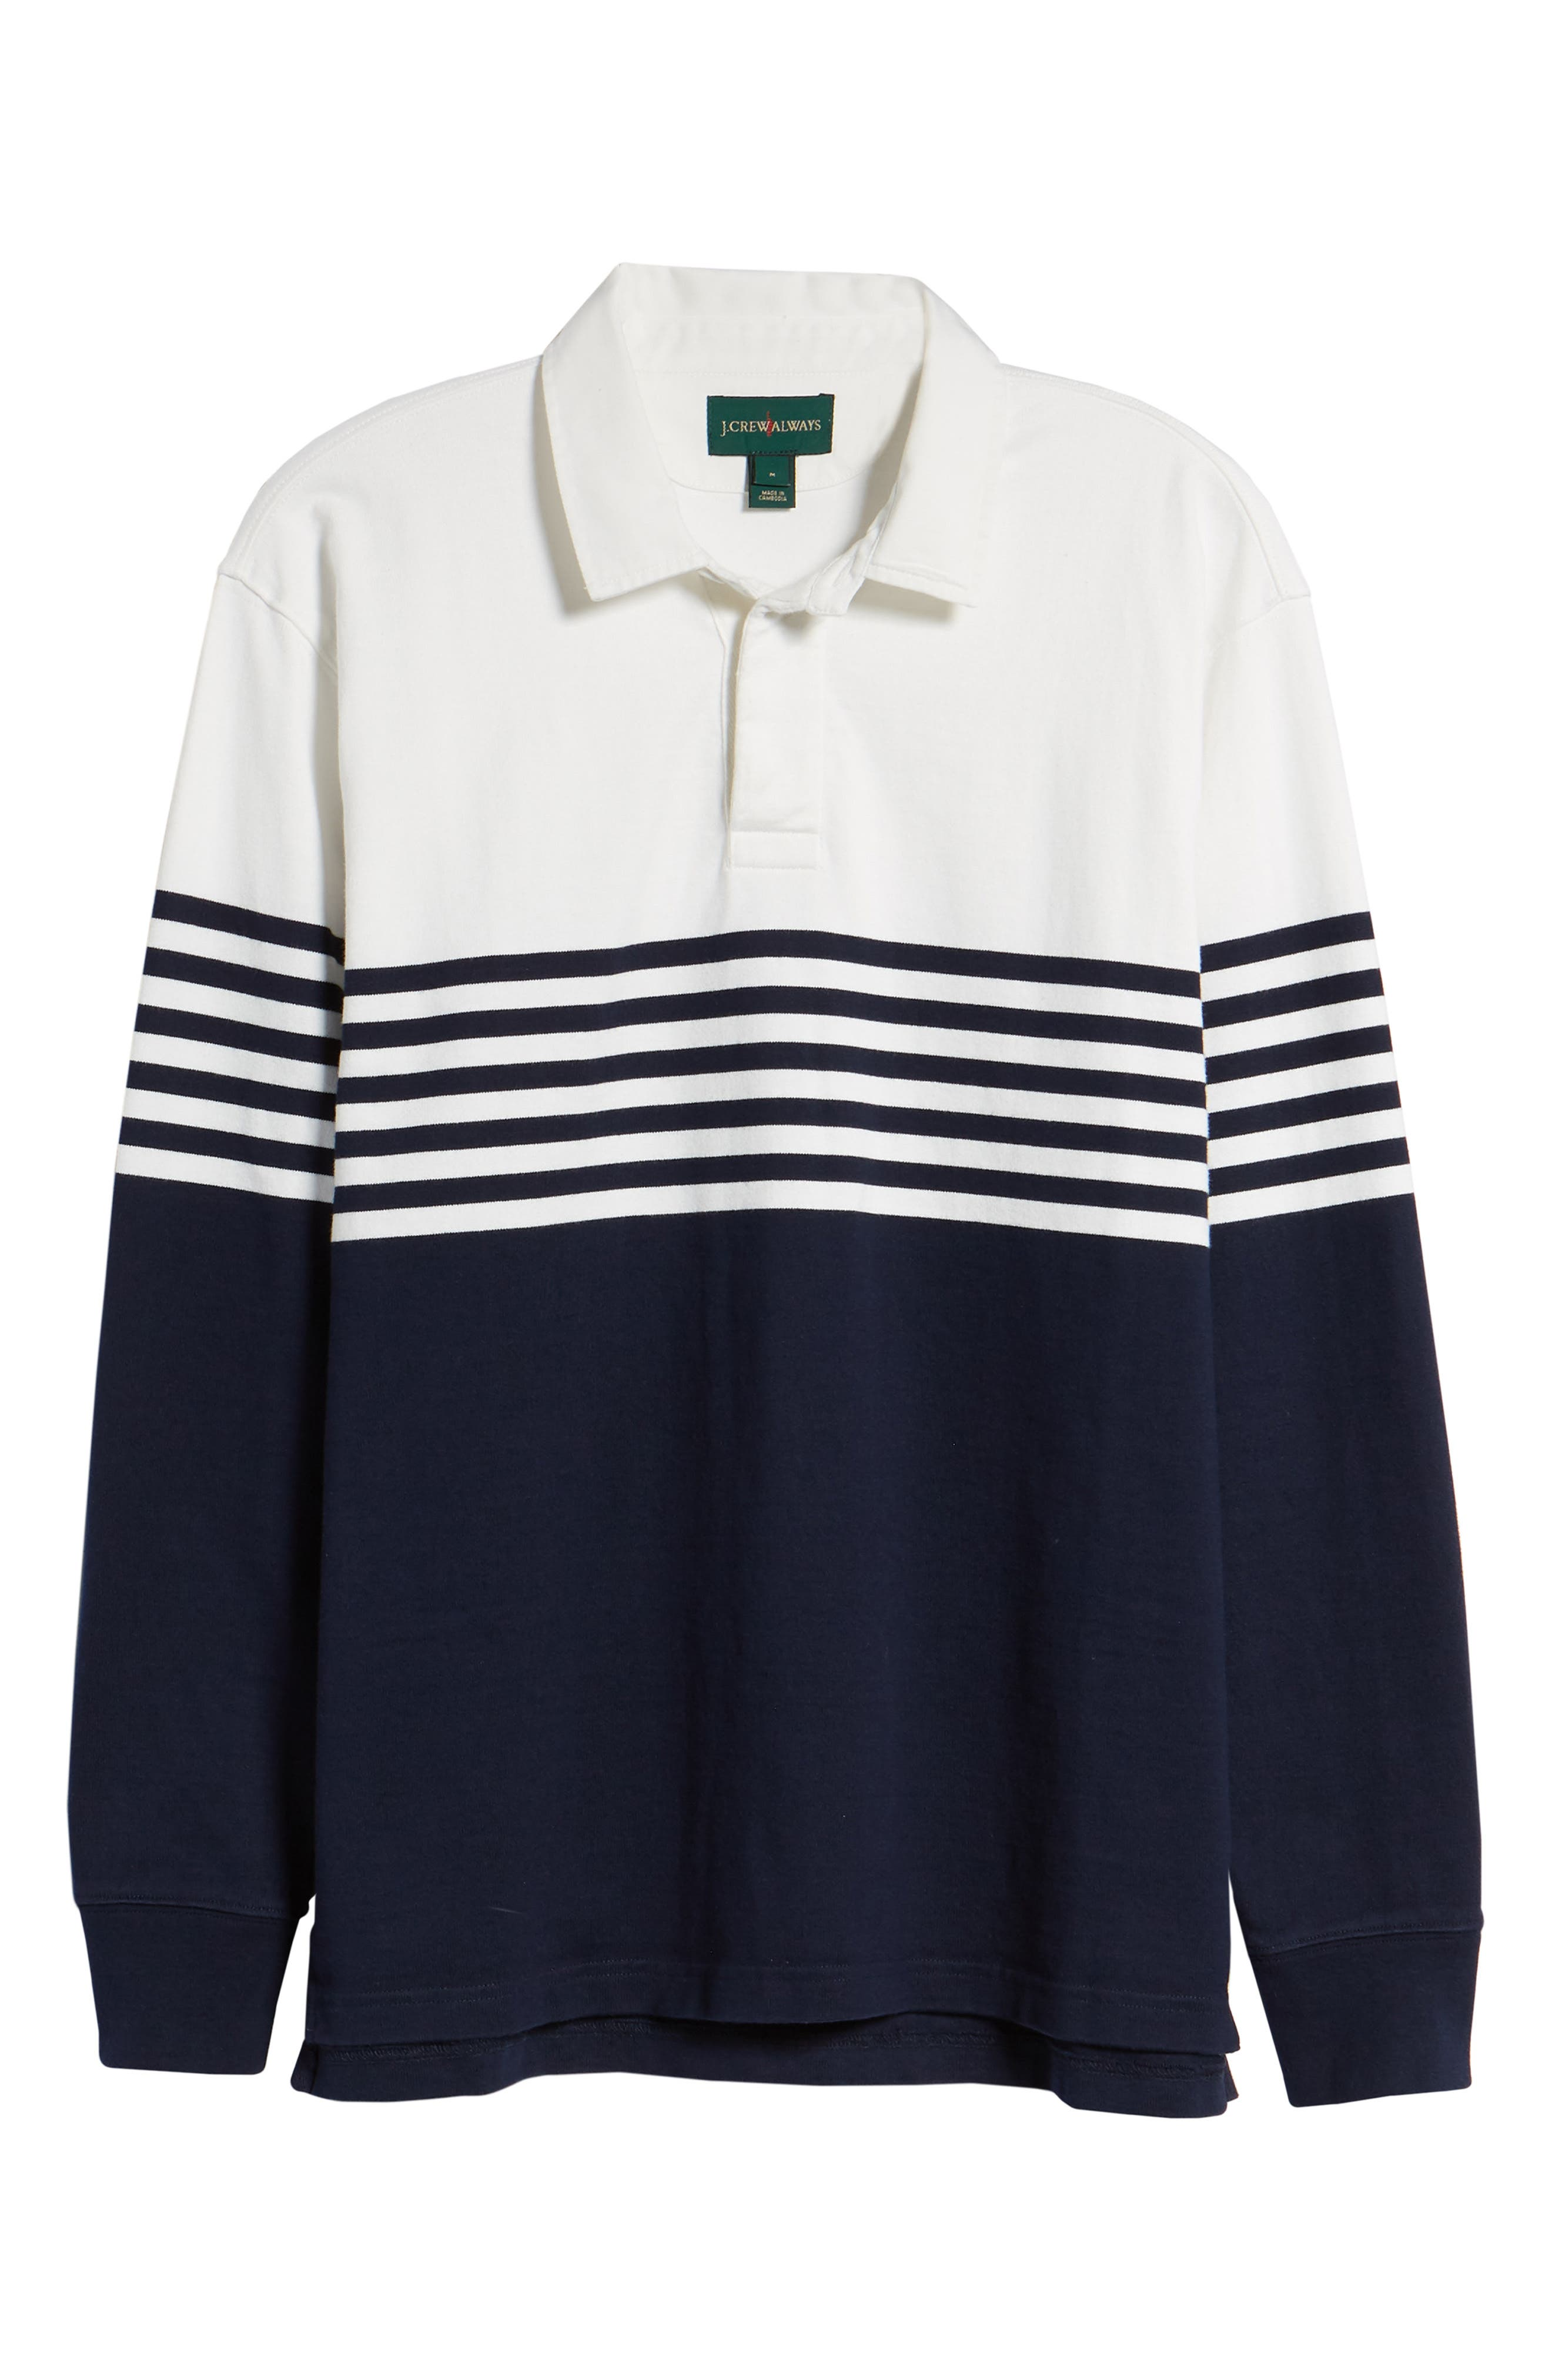 1984 Colorblock Stripe Rugby Shirt,                             Alternate thumbnail 6, color,                             400